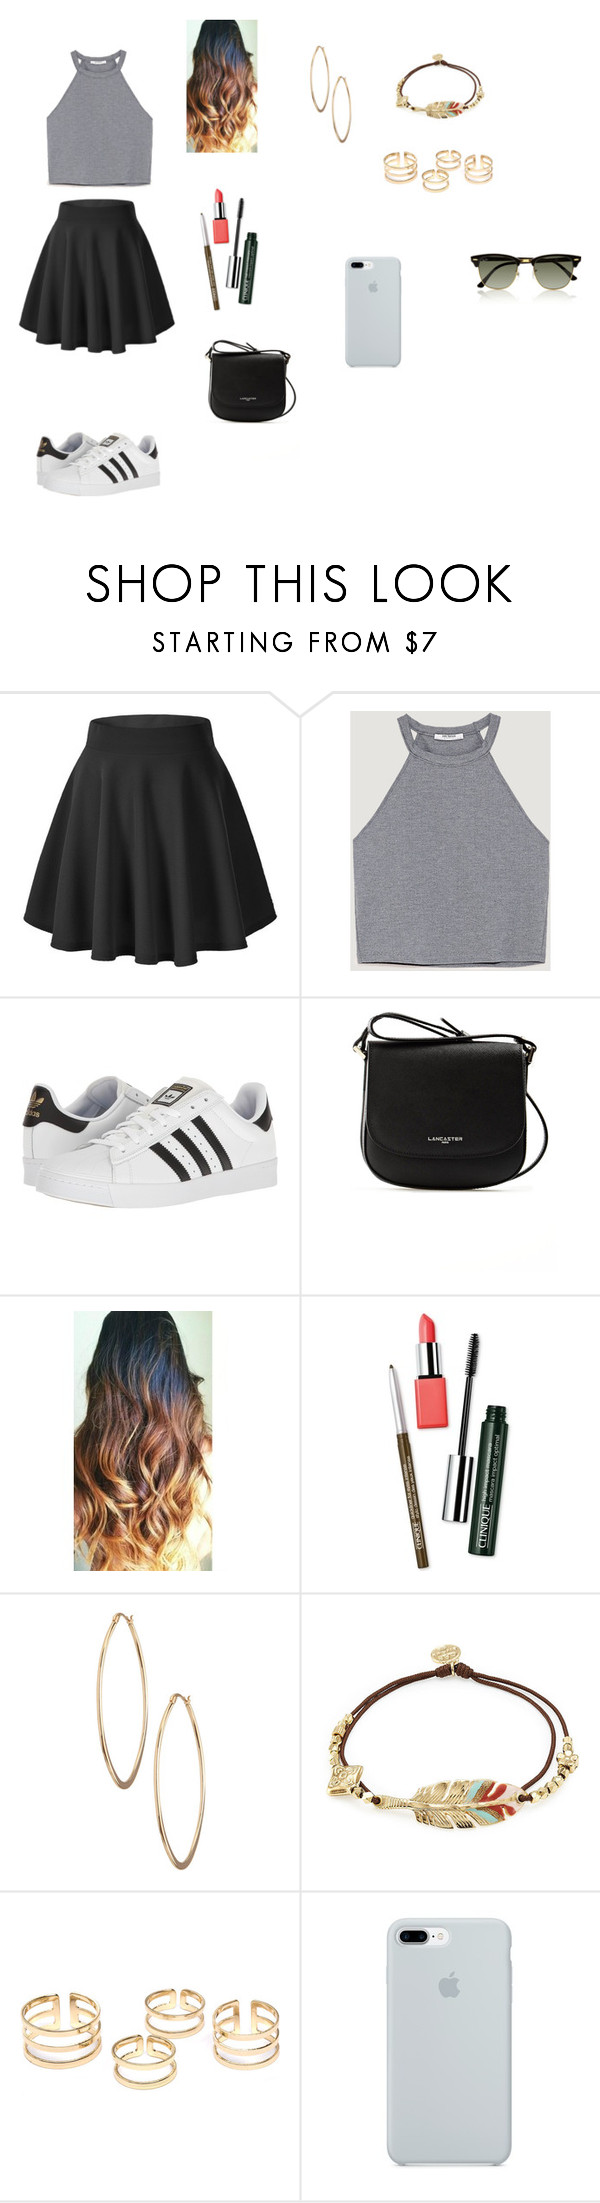 """Sem título #96"" by fernanda-guttilla on Polyvore featuring adidas, Lancaster, Clinique, Lydell NYC, Gas Bijoux, ETUÍ, Ray-Ban, men's fashion e menswear"